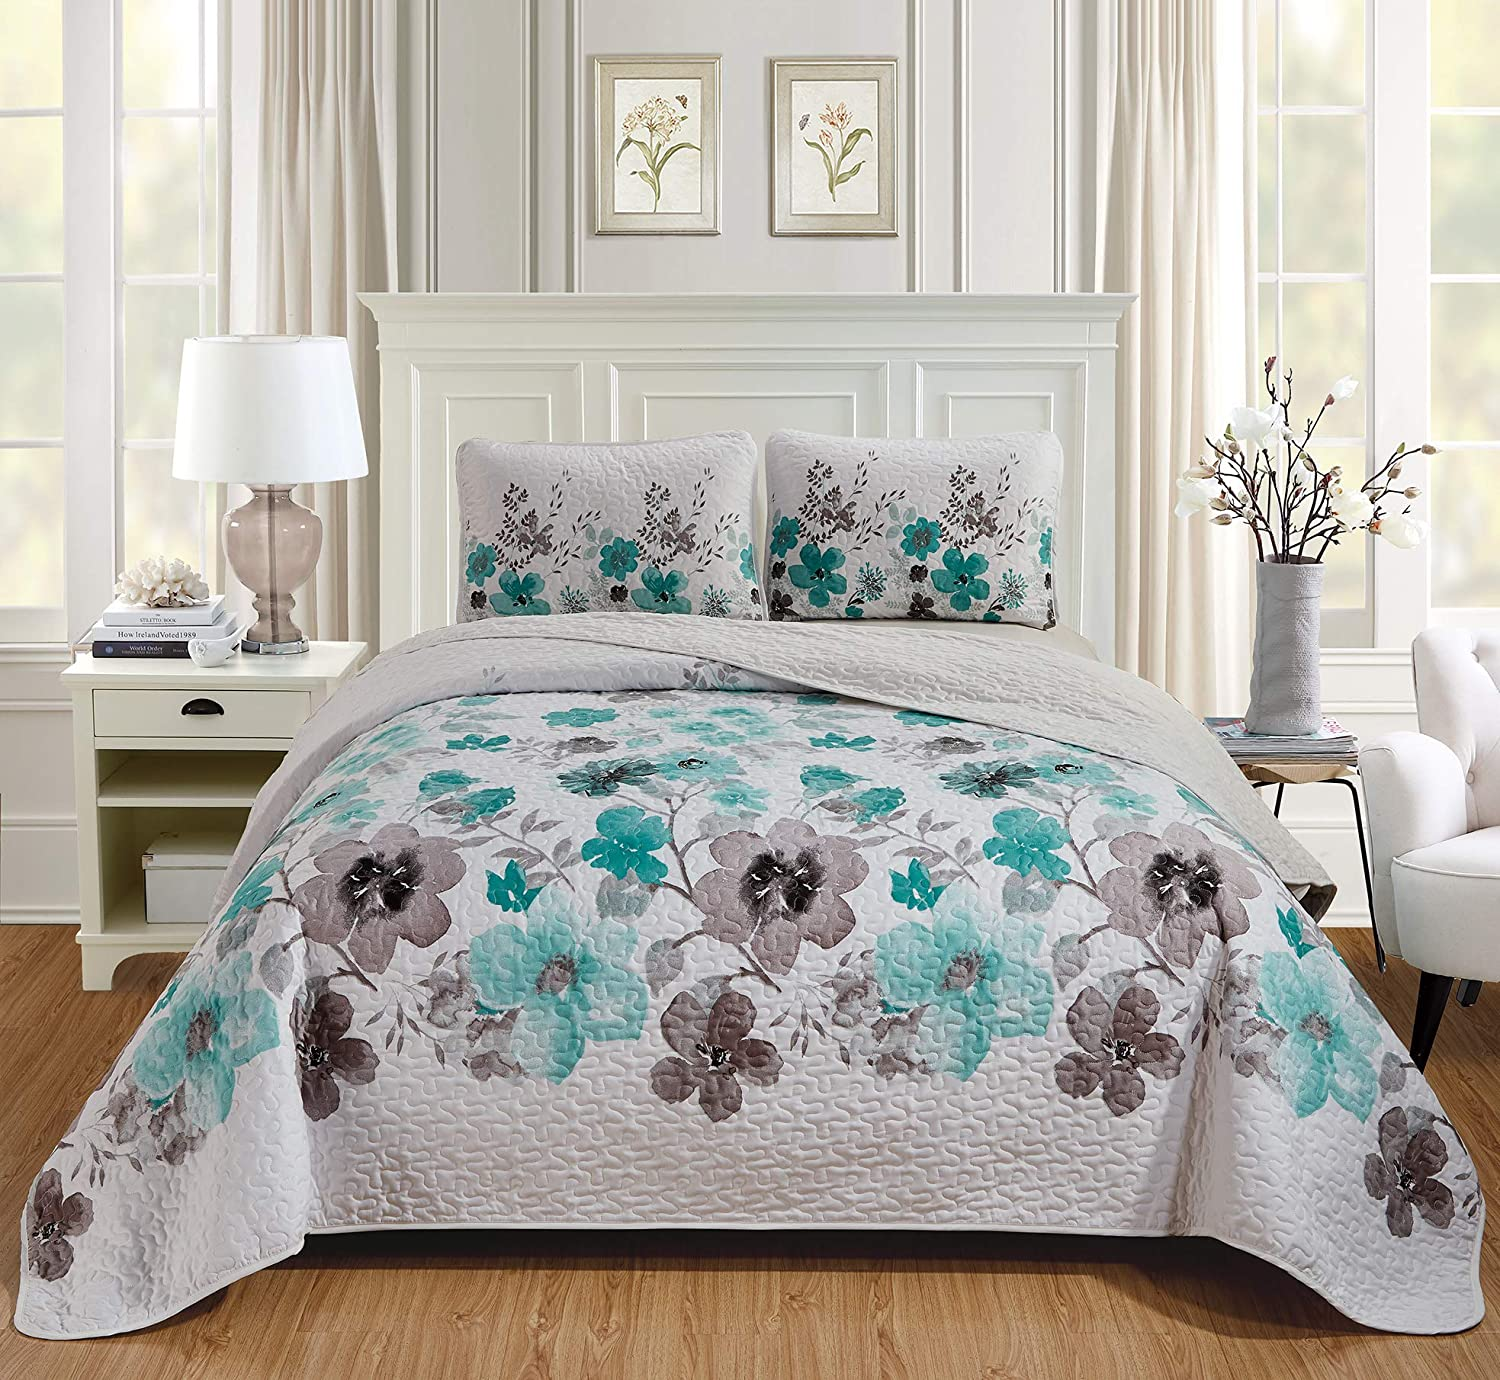 Luxury Home Collection 3 Piece Full/Queen Quilted Reversible Coverlet Bedspread Set Floral Printed Turquoise White Gray